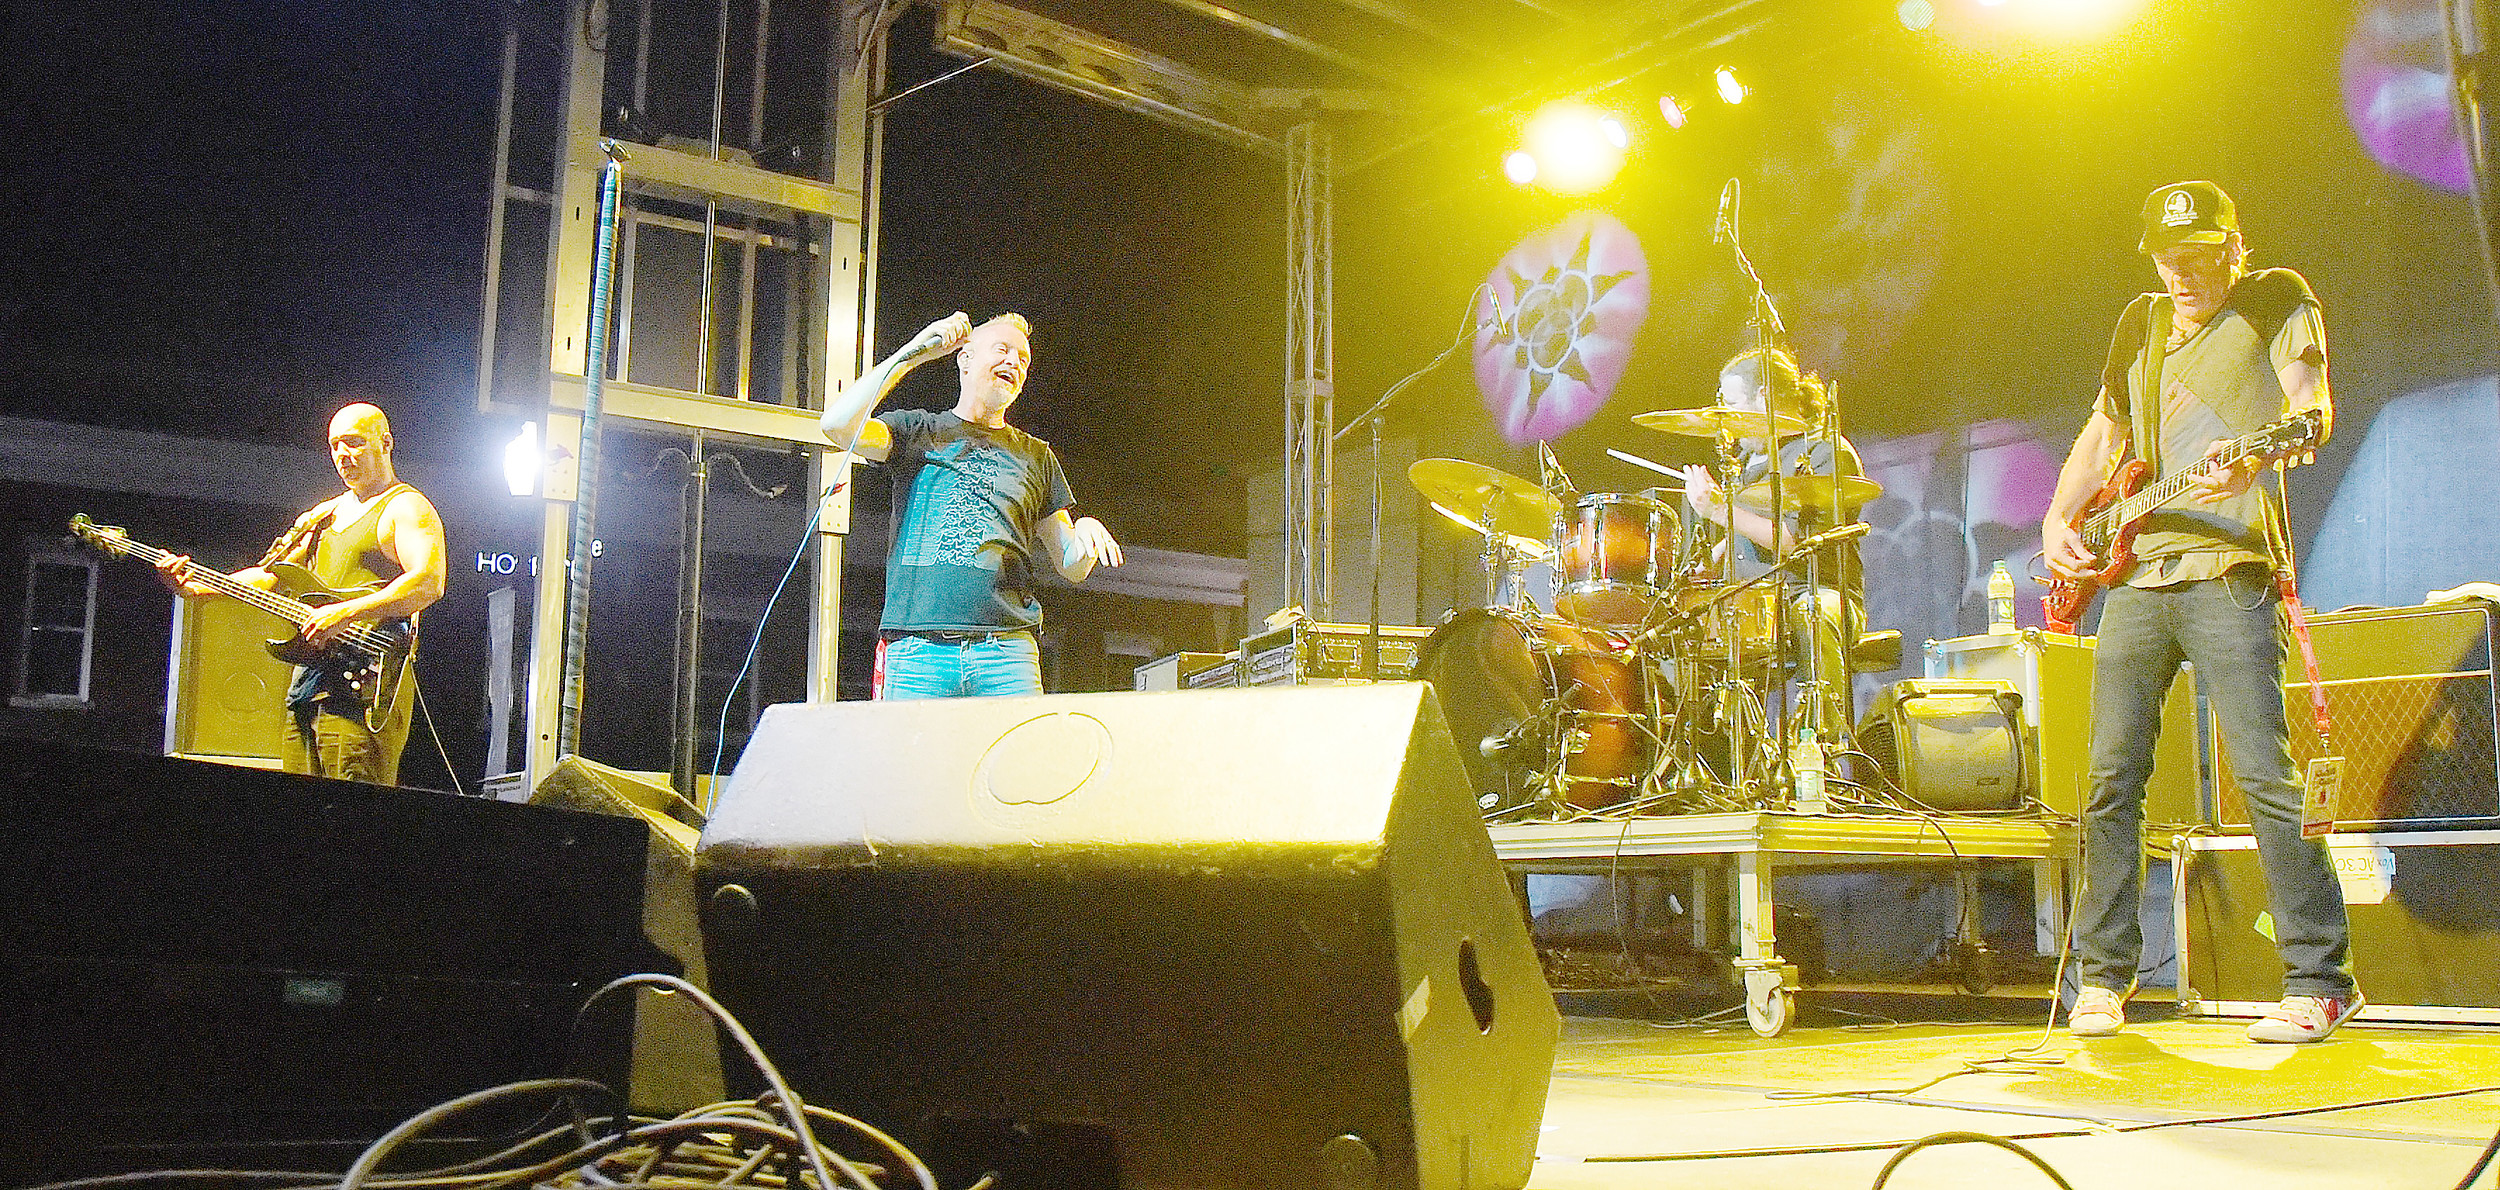 Spin Doctors were the headlining act Saturday night as the 2017 Foothills Festival came to a close. The event was deemed a huge success by event organizers. Daily Mountain Eagle - Ron Harris